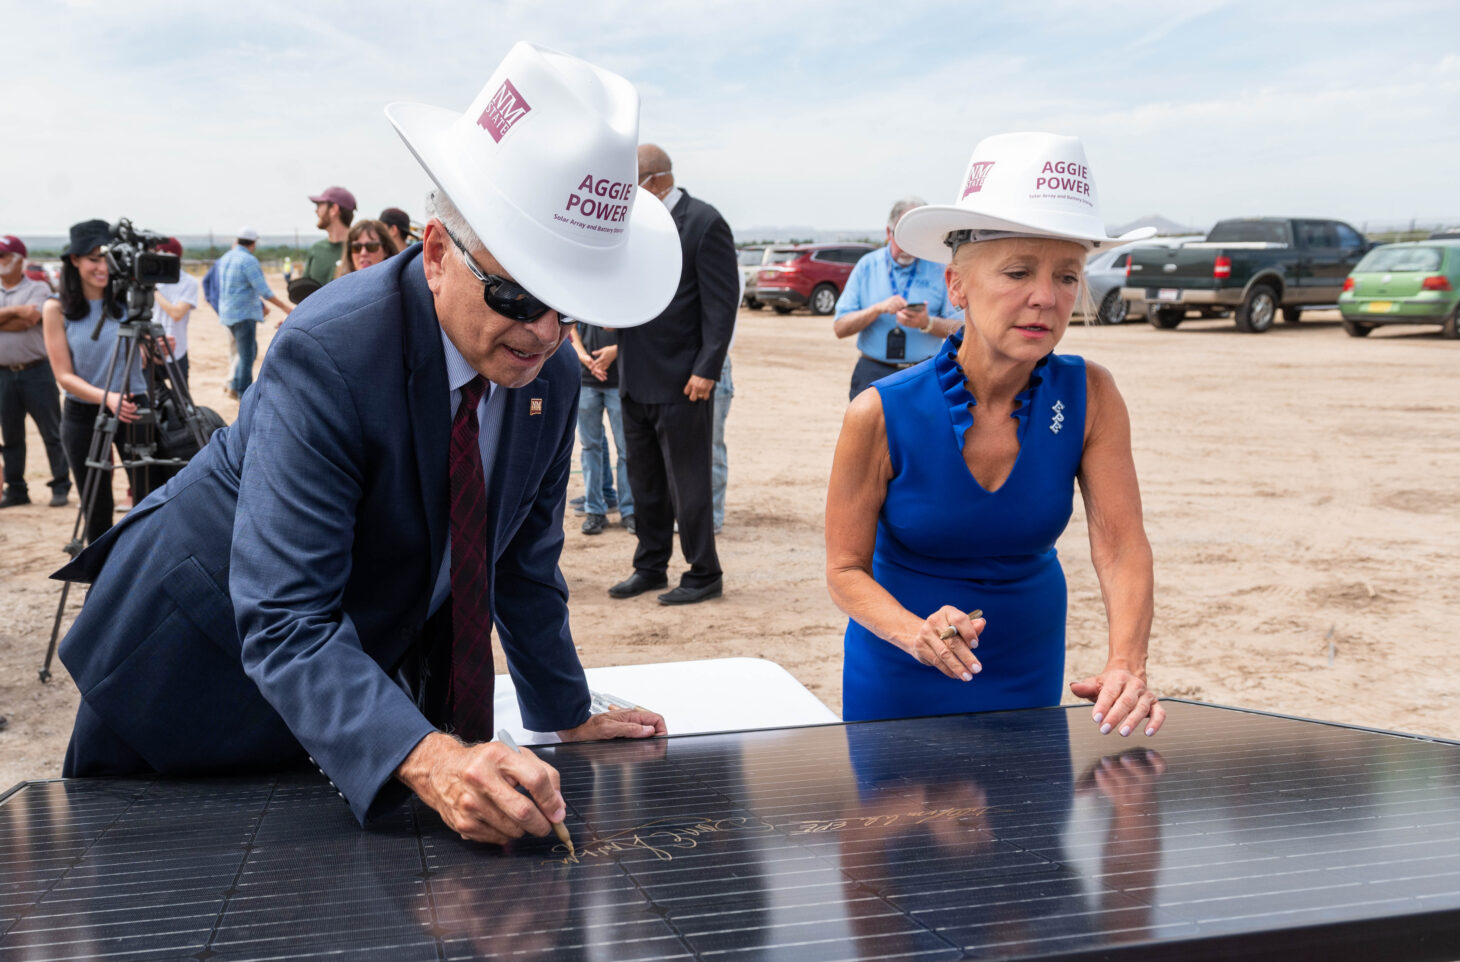 Dan Arvizu, NMSU Chancellor and Kelly Tomblin, El Paso Electric's CEO and President sign a solar panel during the ribbon cutting for the Aggie Power Solar Array. September 23, 2021. | NMSU photo by Josh Bachman